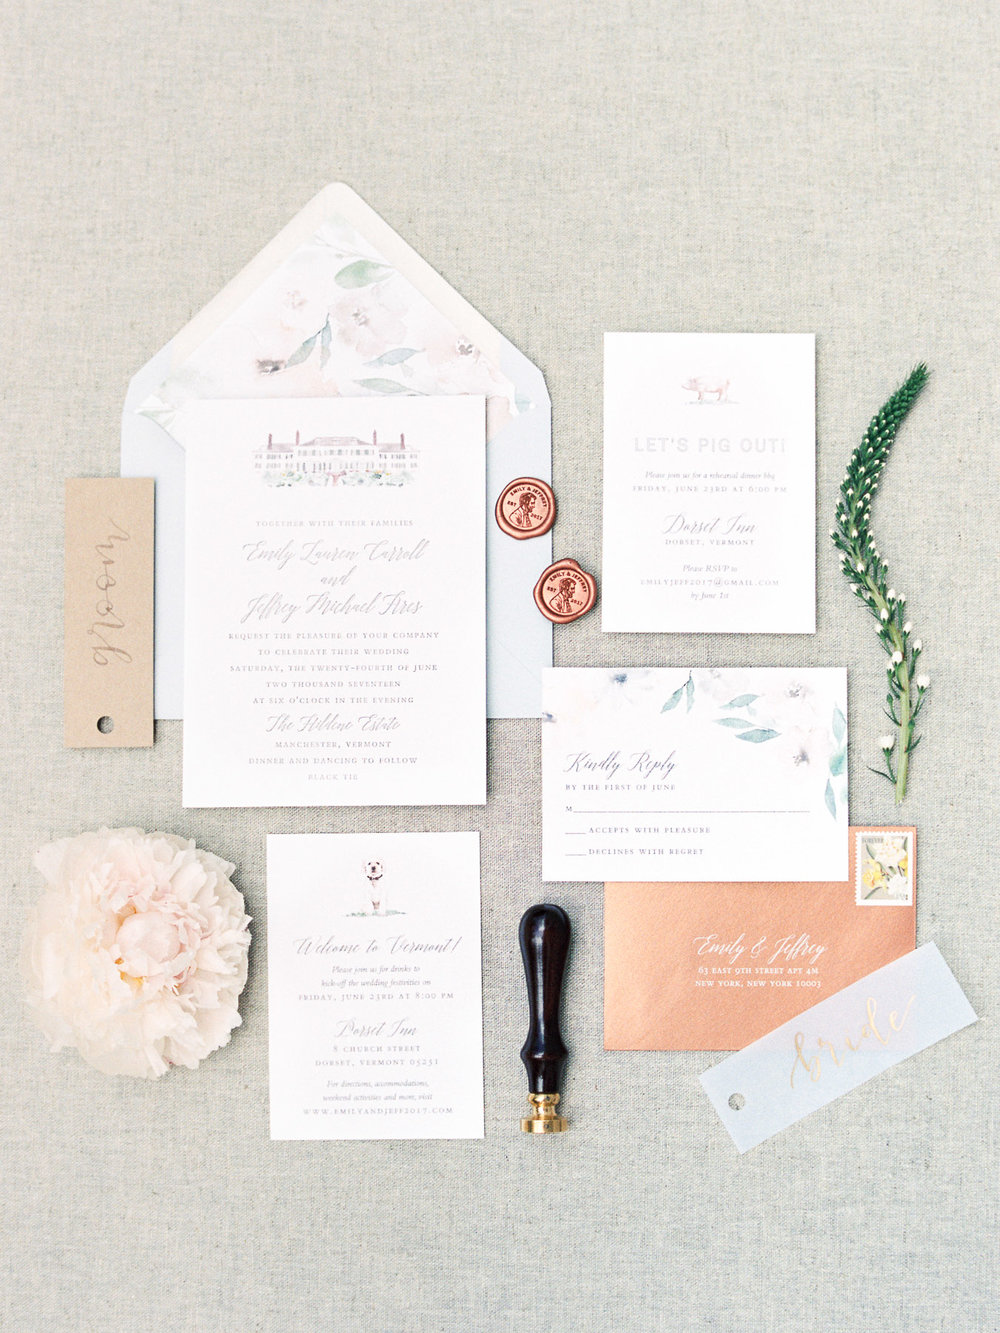 Wedding Invitation Suite by Tie That Binds